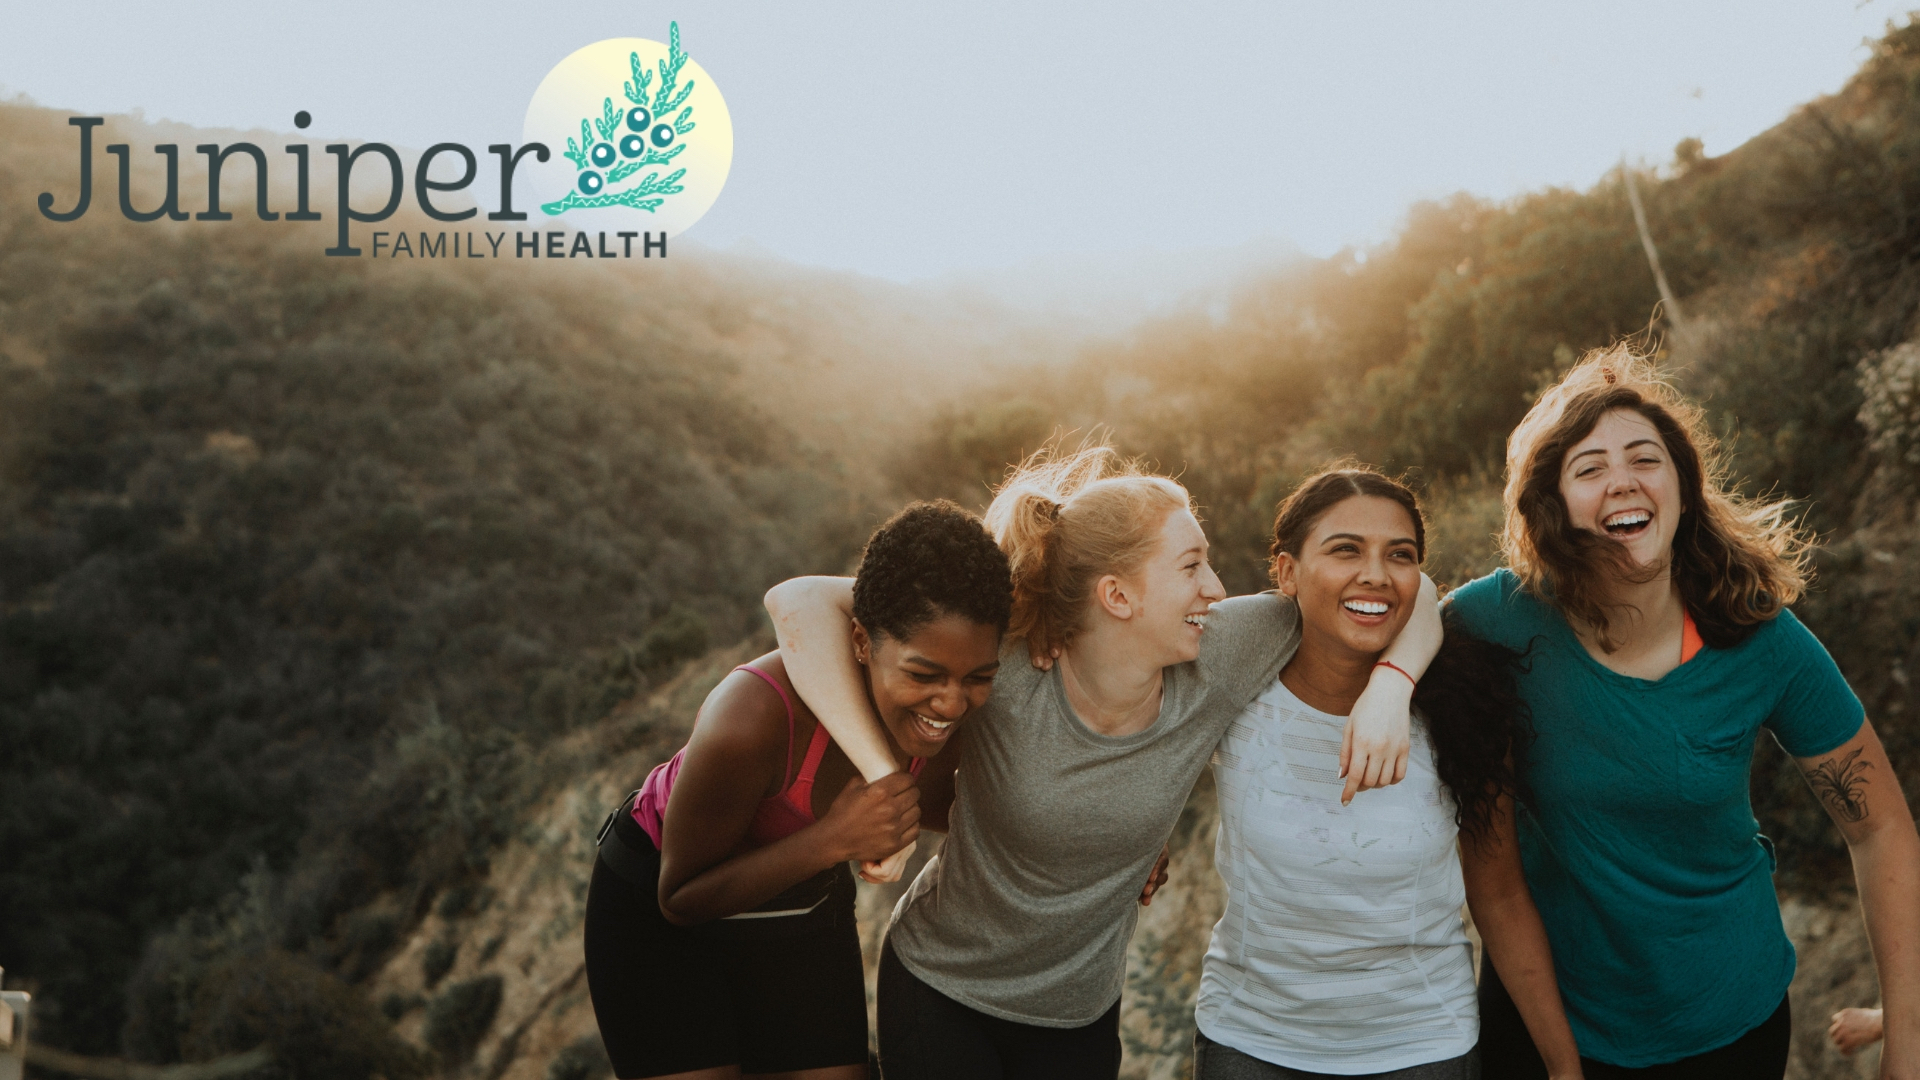 naturopath victoria, naturopathic doctor victoria bc, naturopathic clinics victoria bc, naturopathic medicine, victoria bc, women's health, menstrual cramping, hormones, natural pain relief, menstrual disorders, menstrual cramps